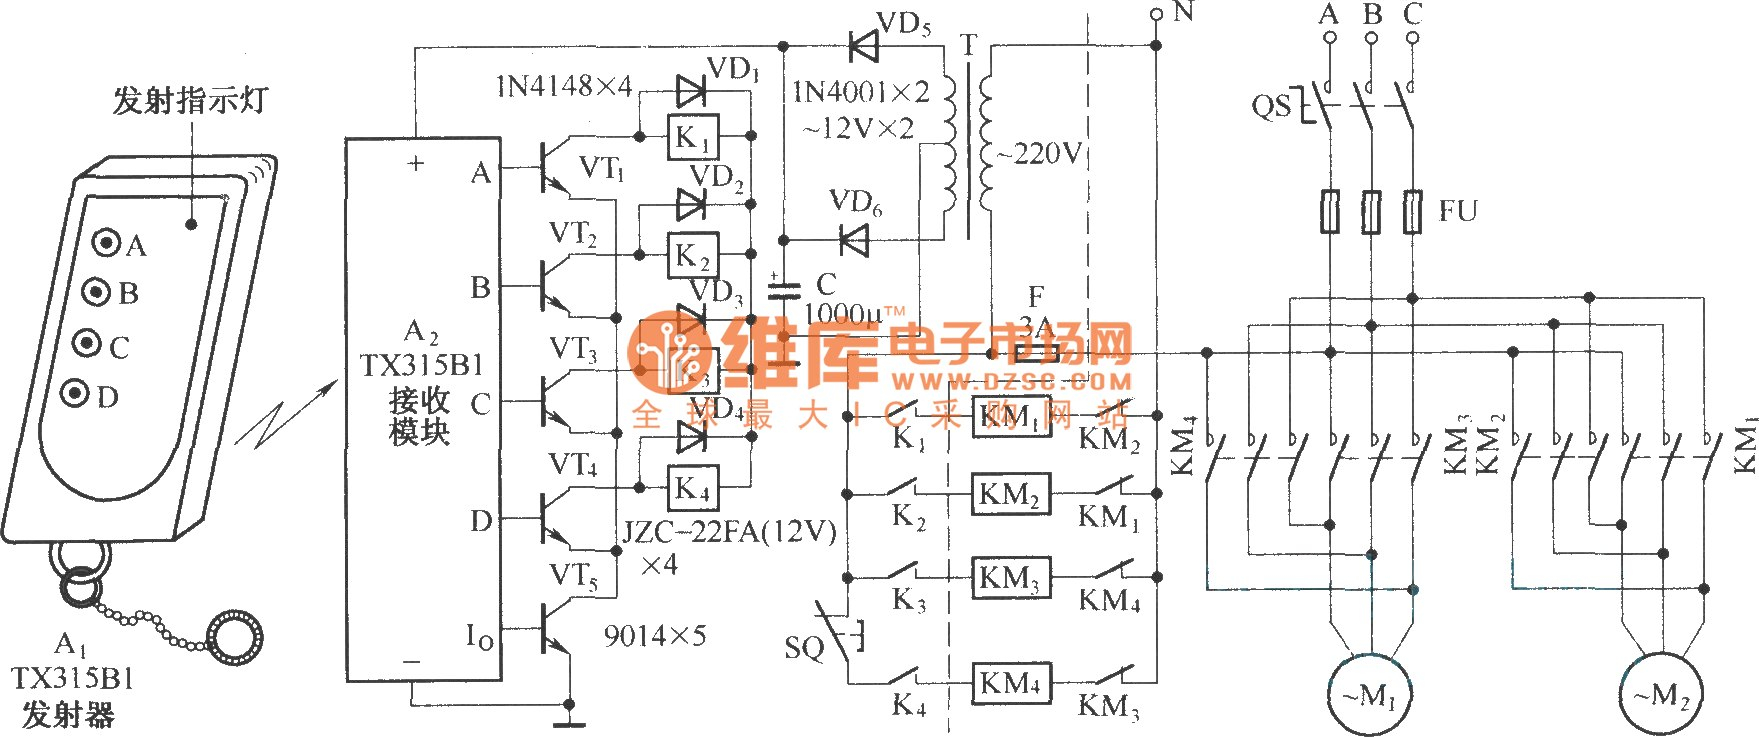 Electric Tarp Motor Wiring Diagram Download Wiring